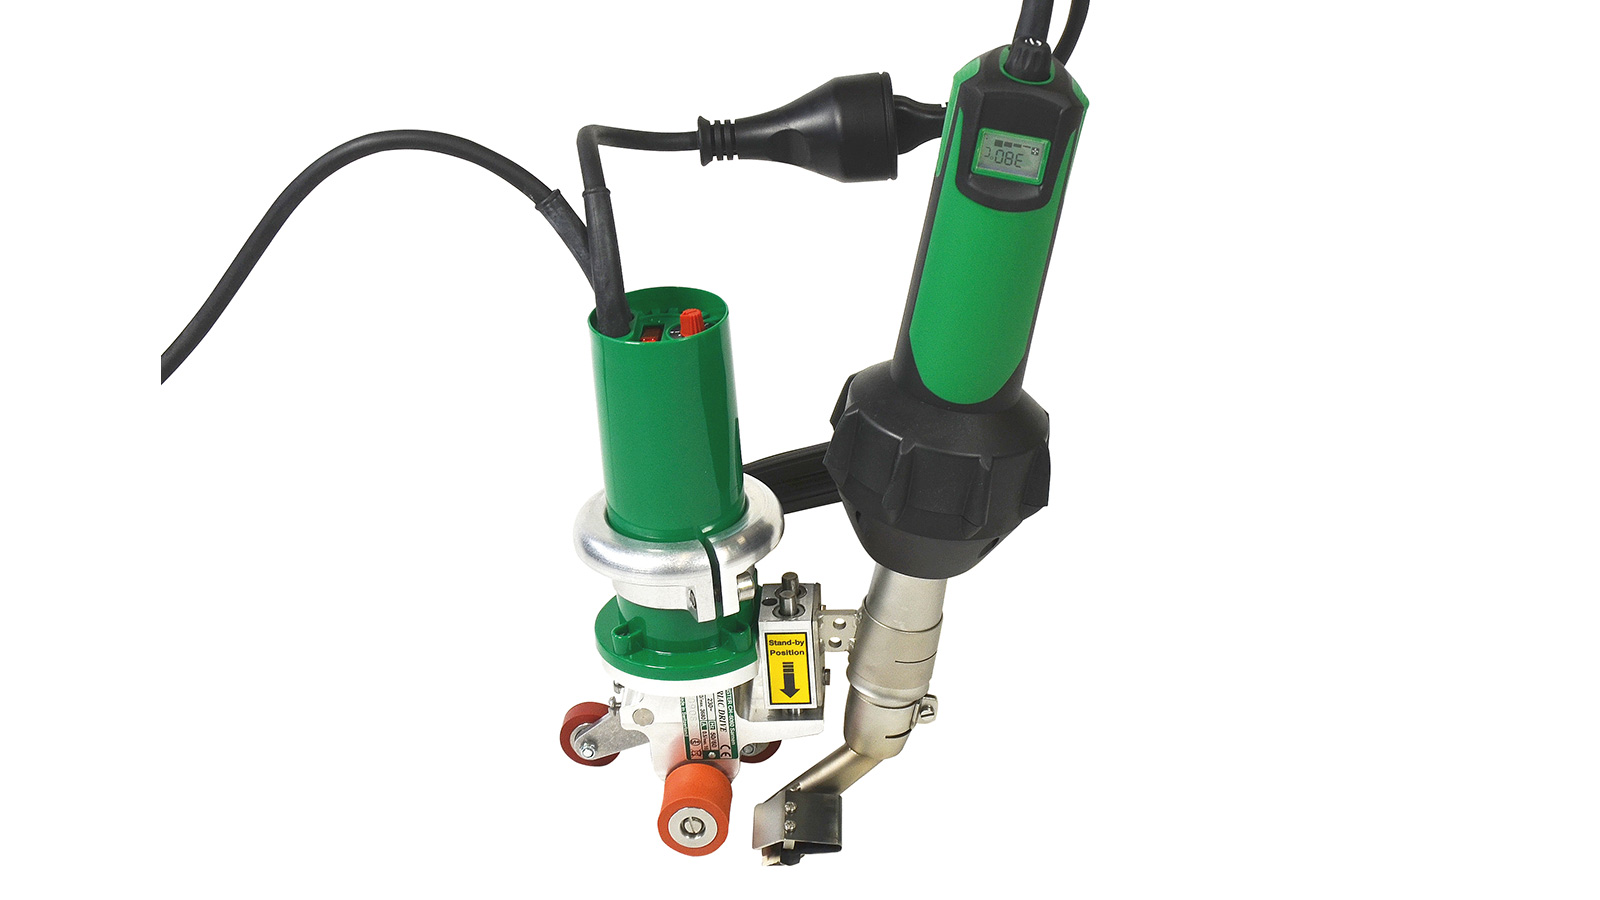 hight resolution of leister triac drive hot air plastic welder for roofing membranes water proofing cafe awning